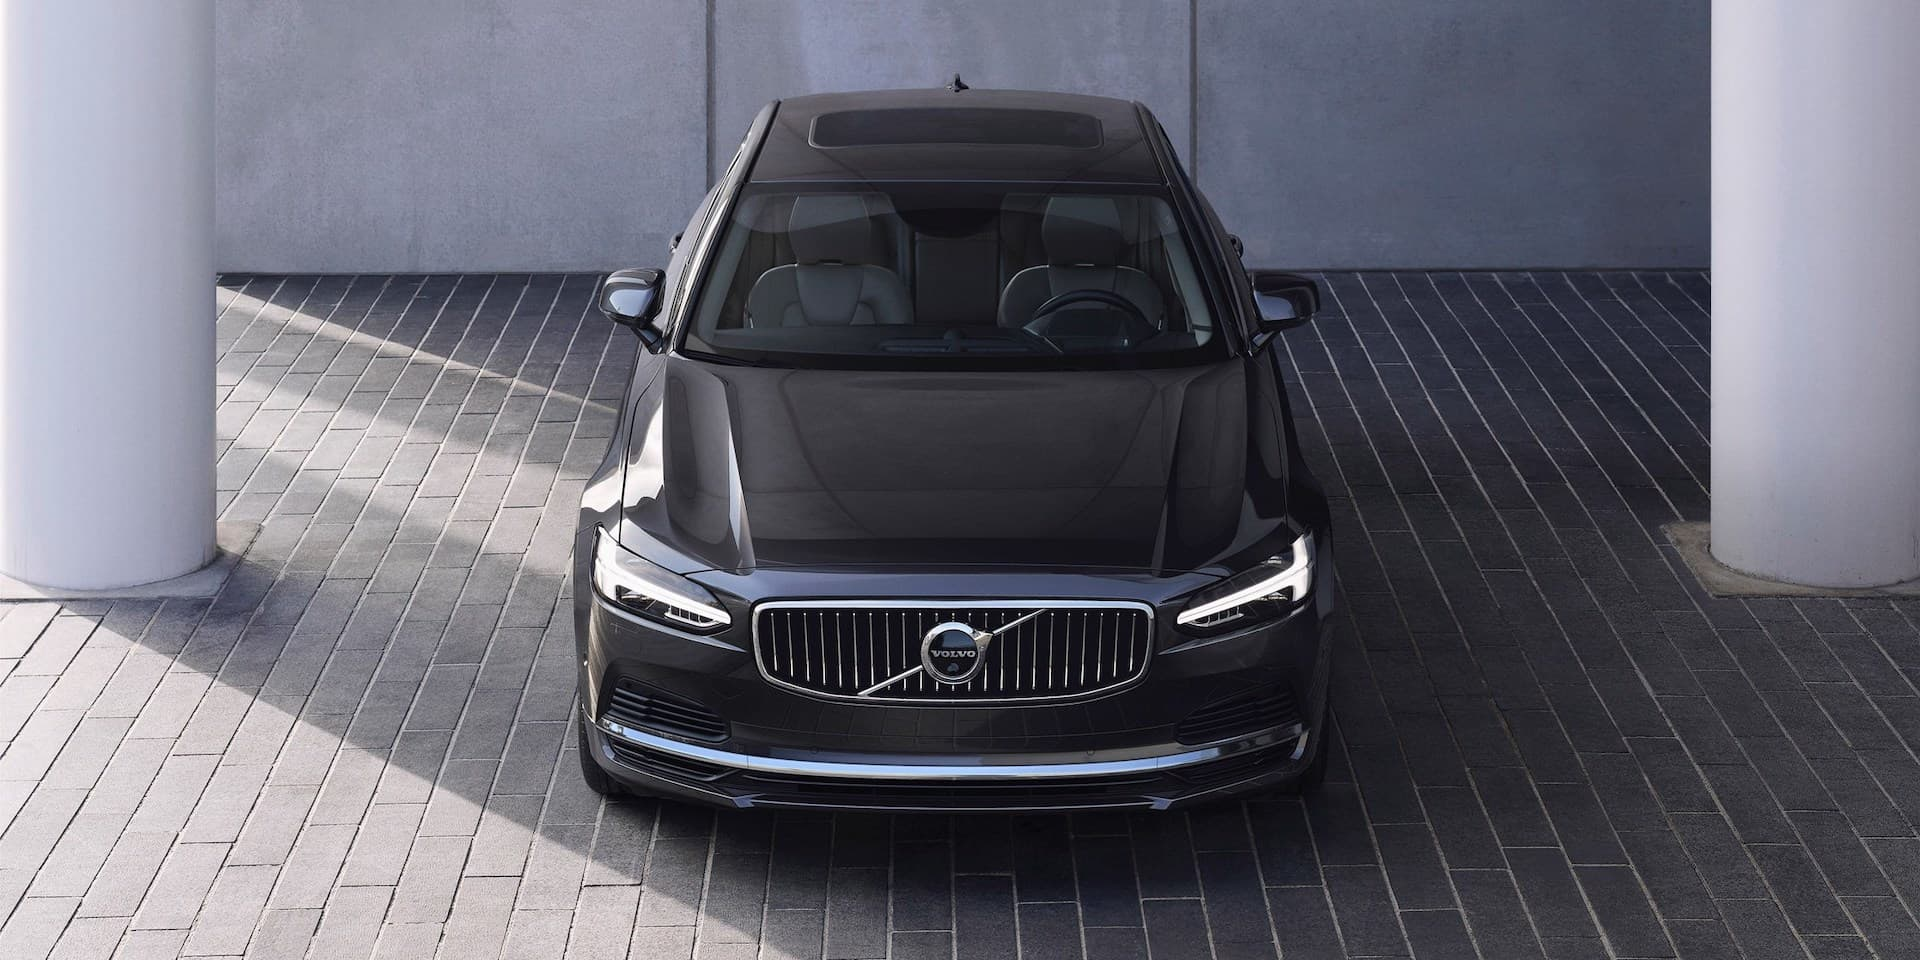 Volvo S90 updated for 2020 | The Car Expert